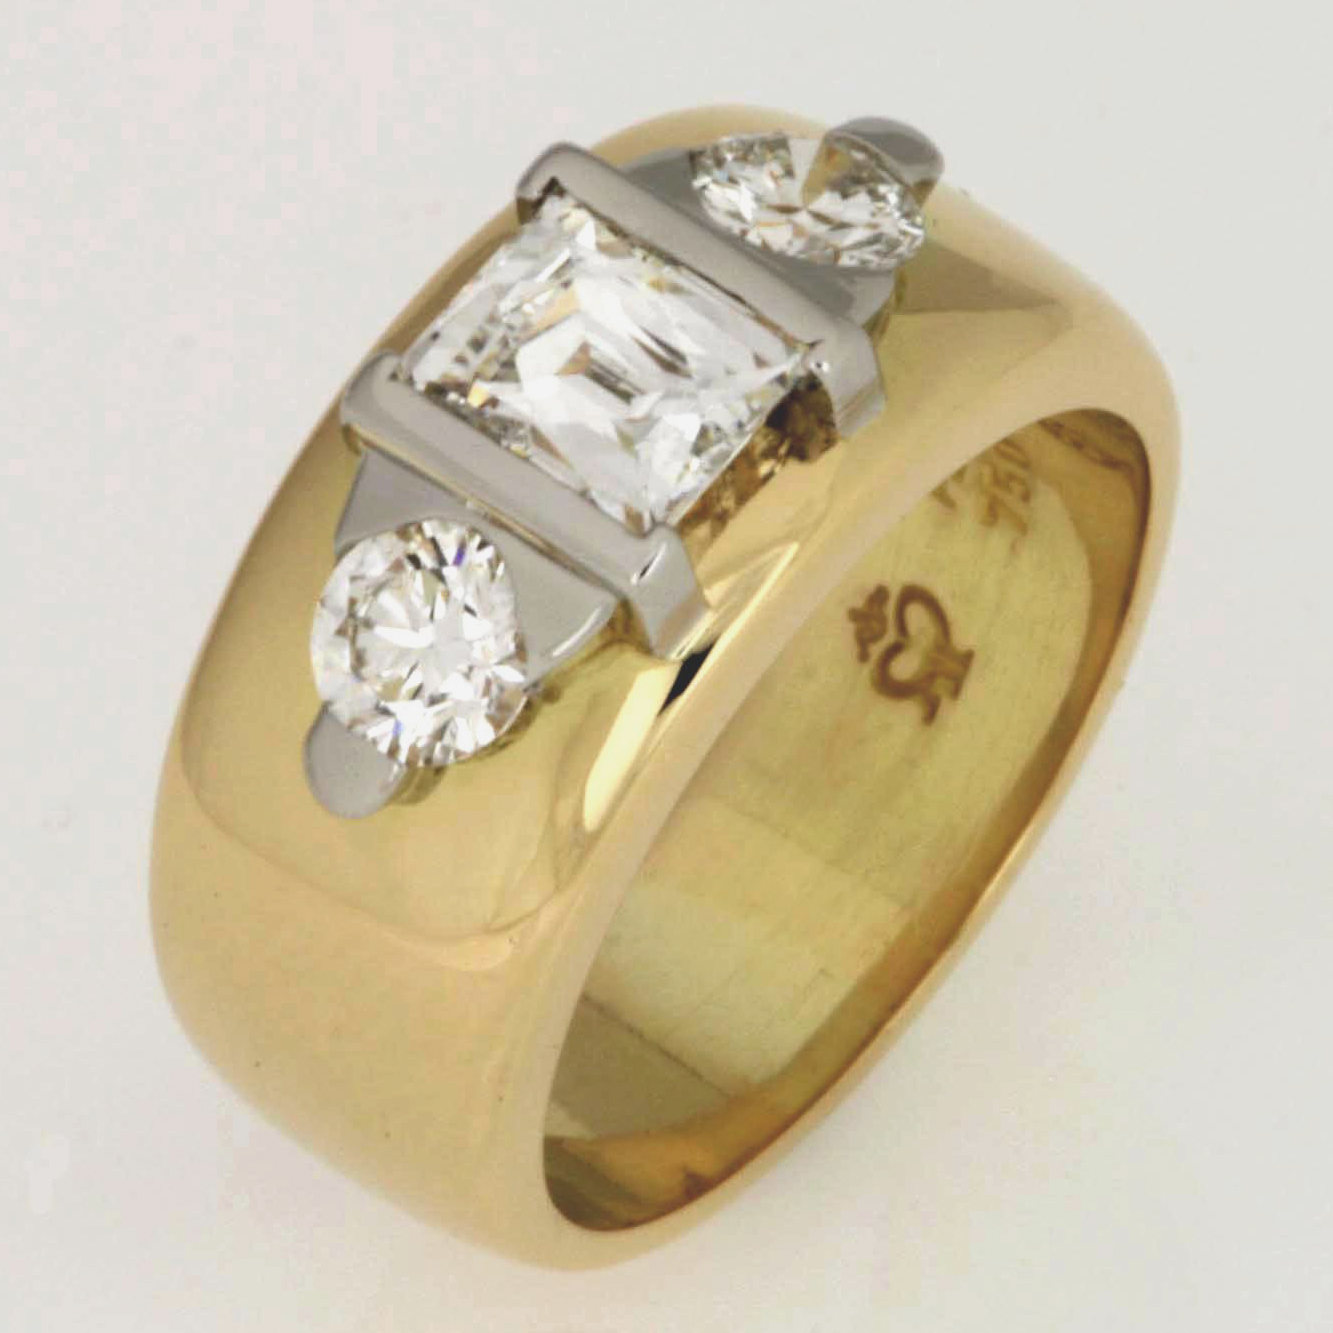 Handmade ladies 18ct yellow gold wedding band featuring a Tycoon Cut diamond and round diamonds set in platinum